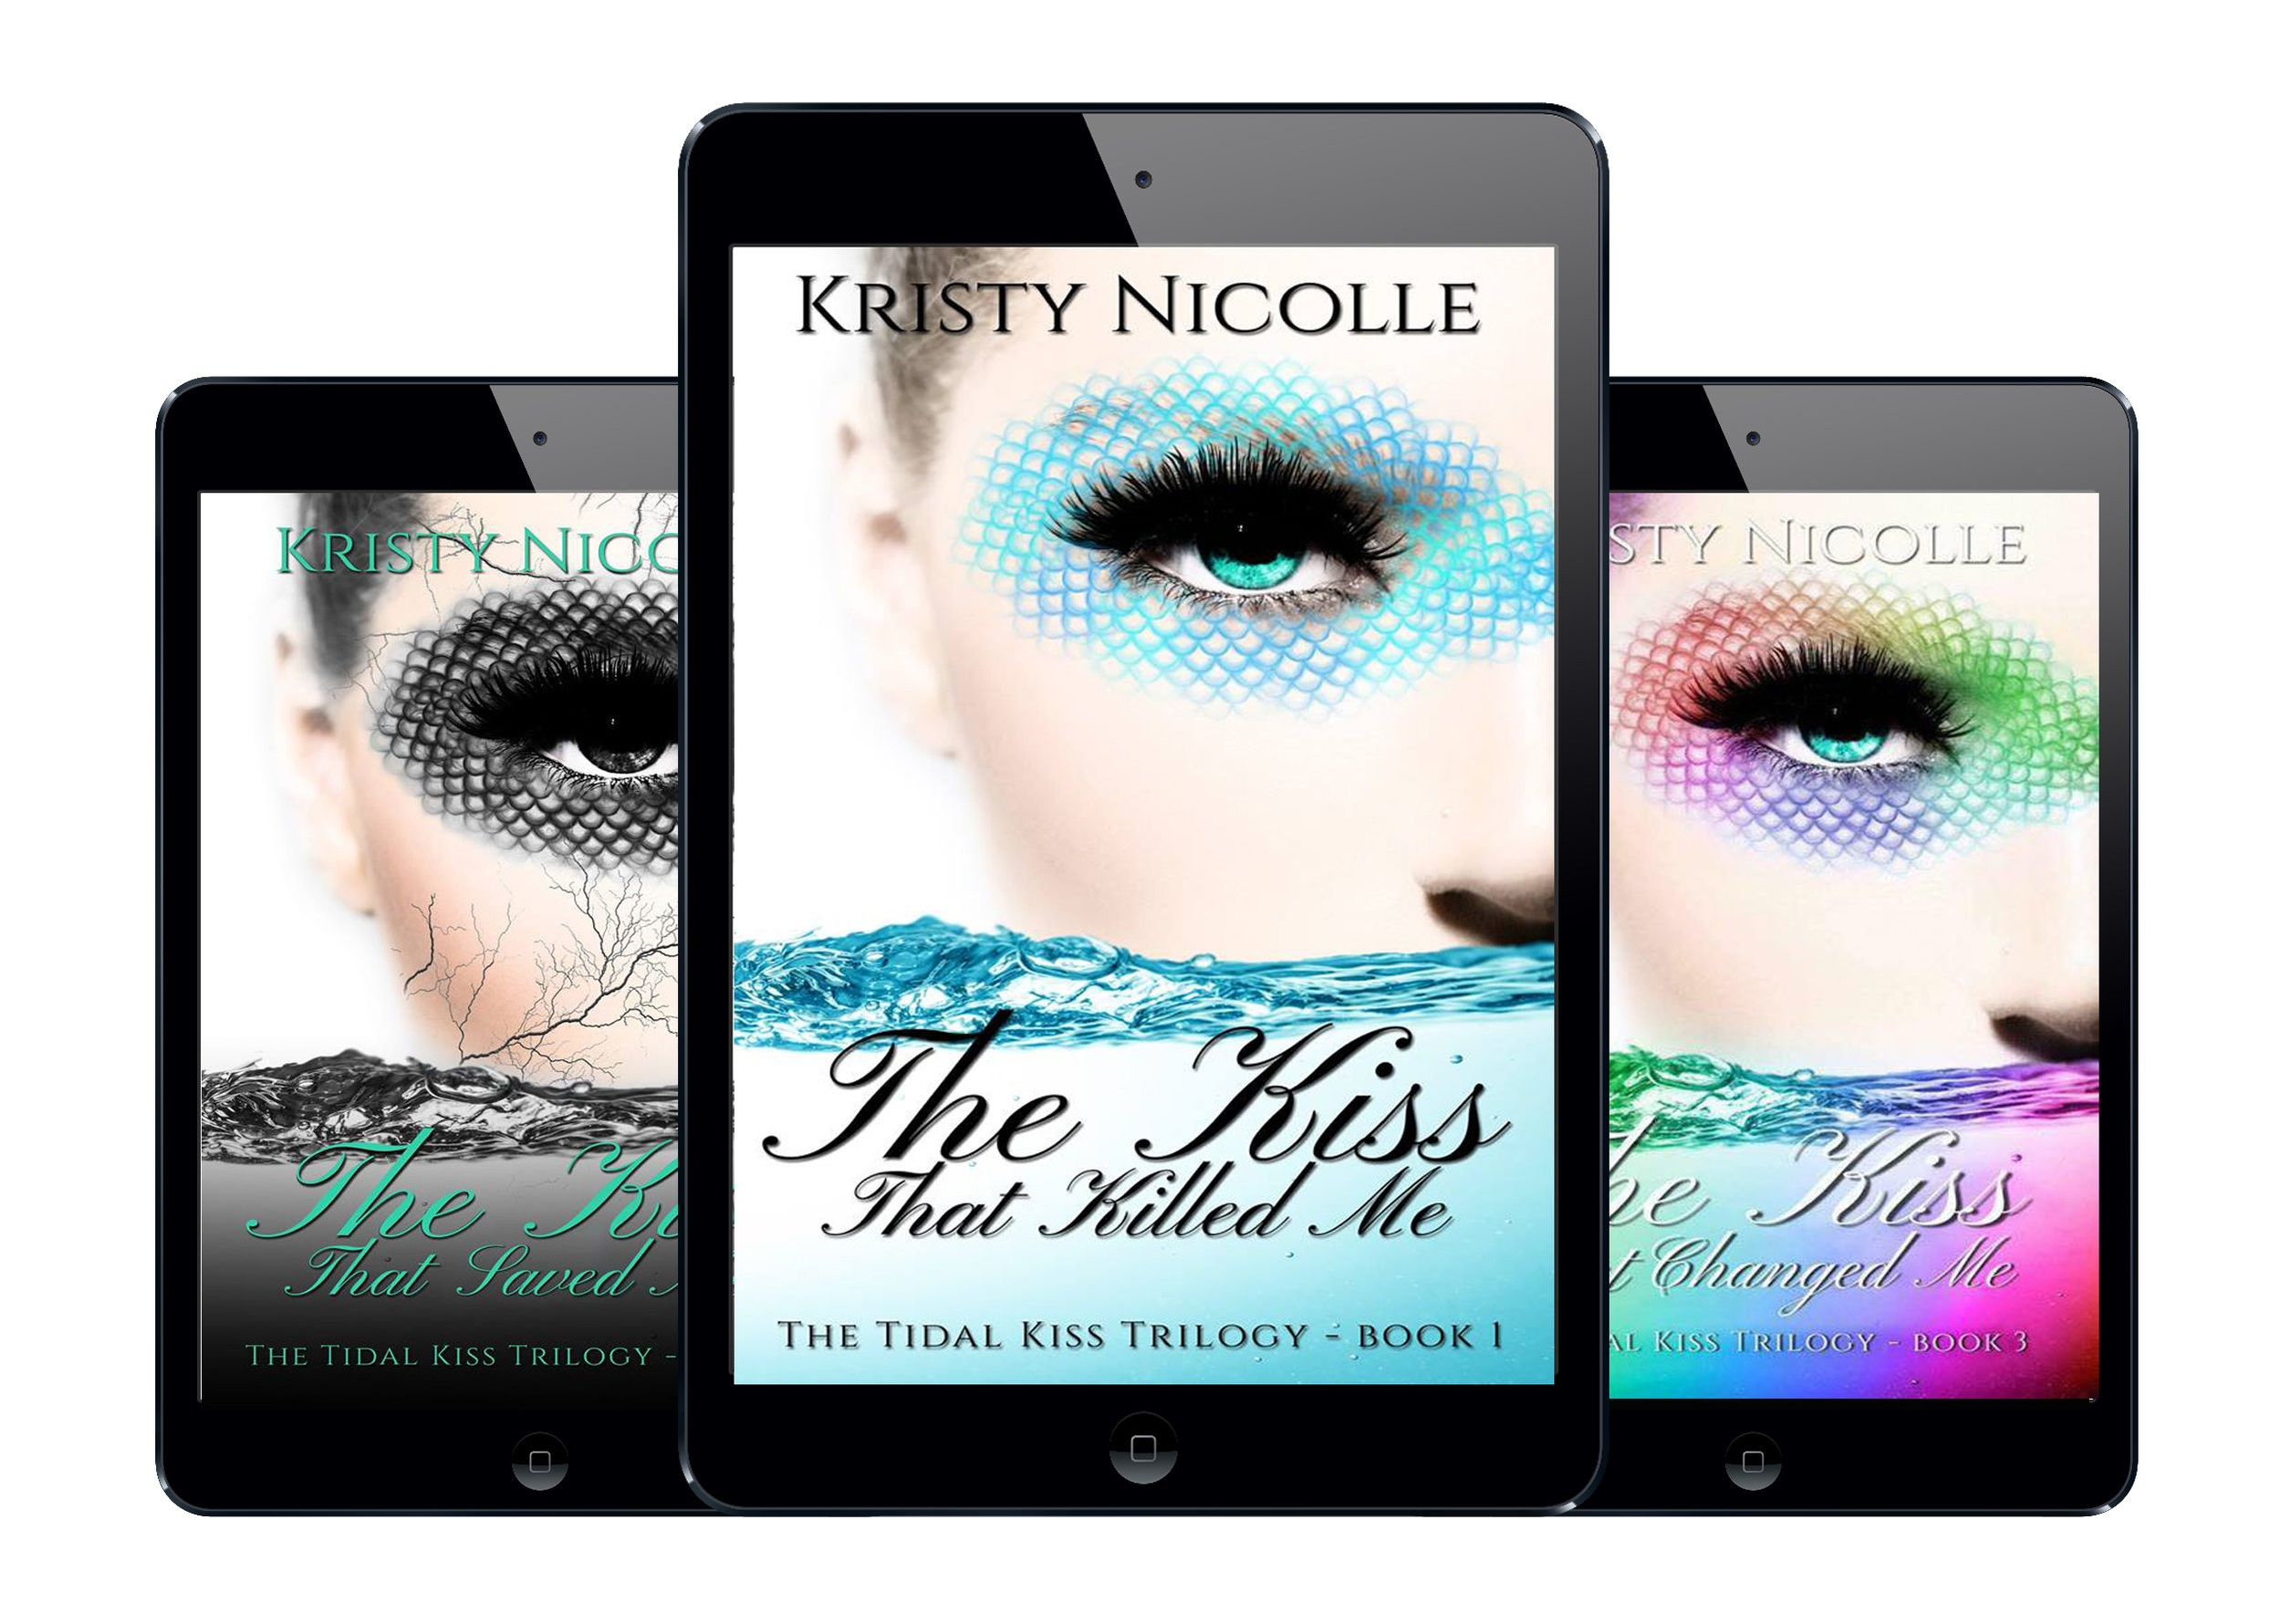 TIDAL+KISS+TRILOGY+BY+KRISTY+NICOLLE